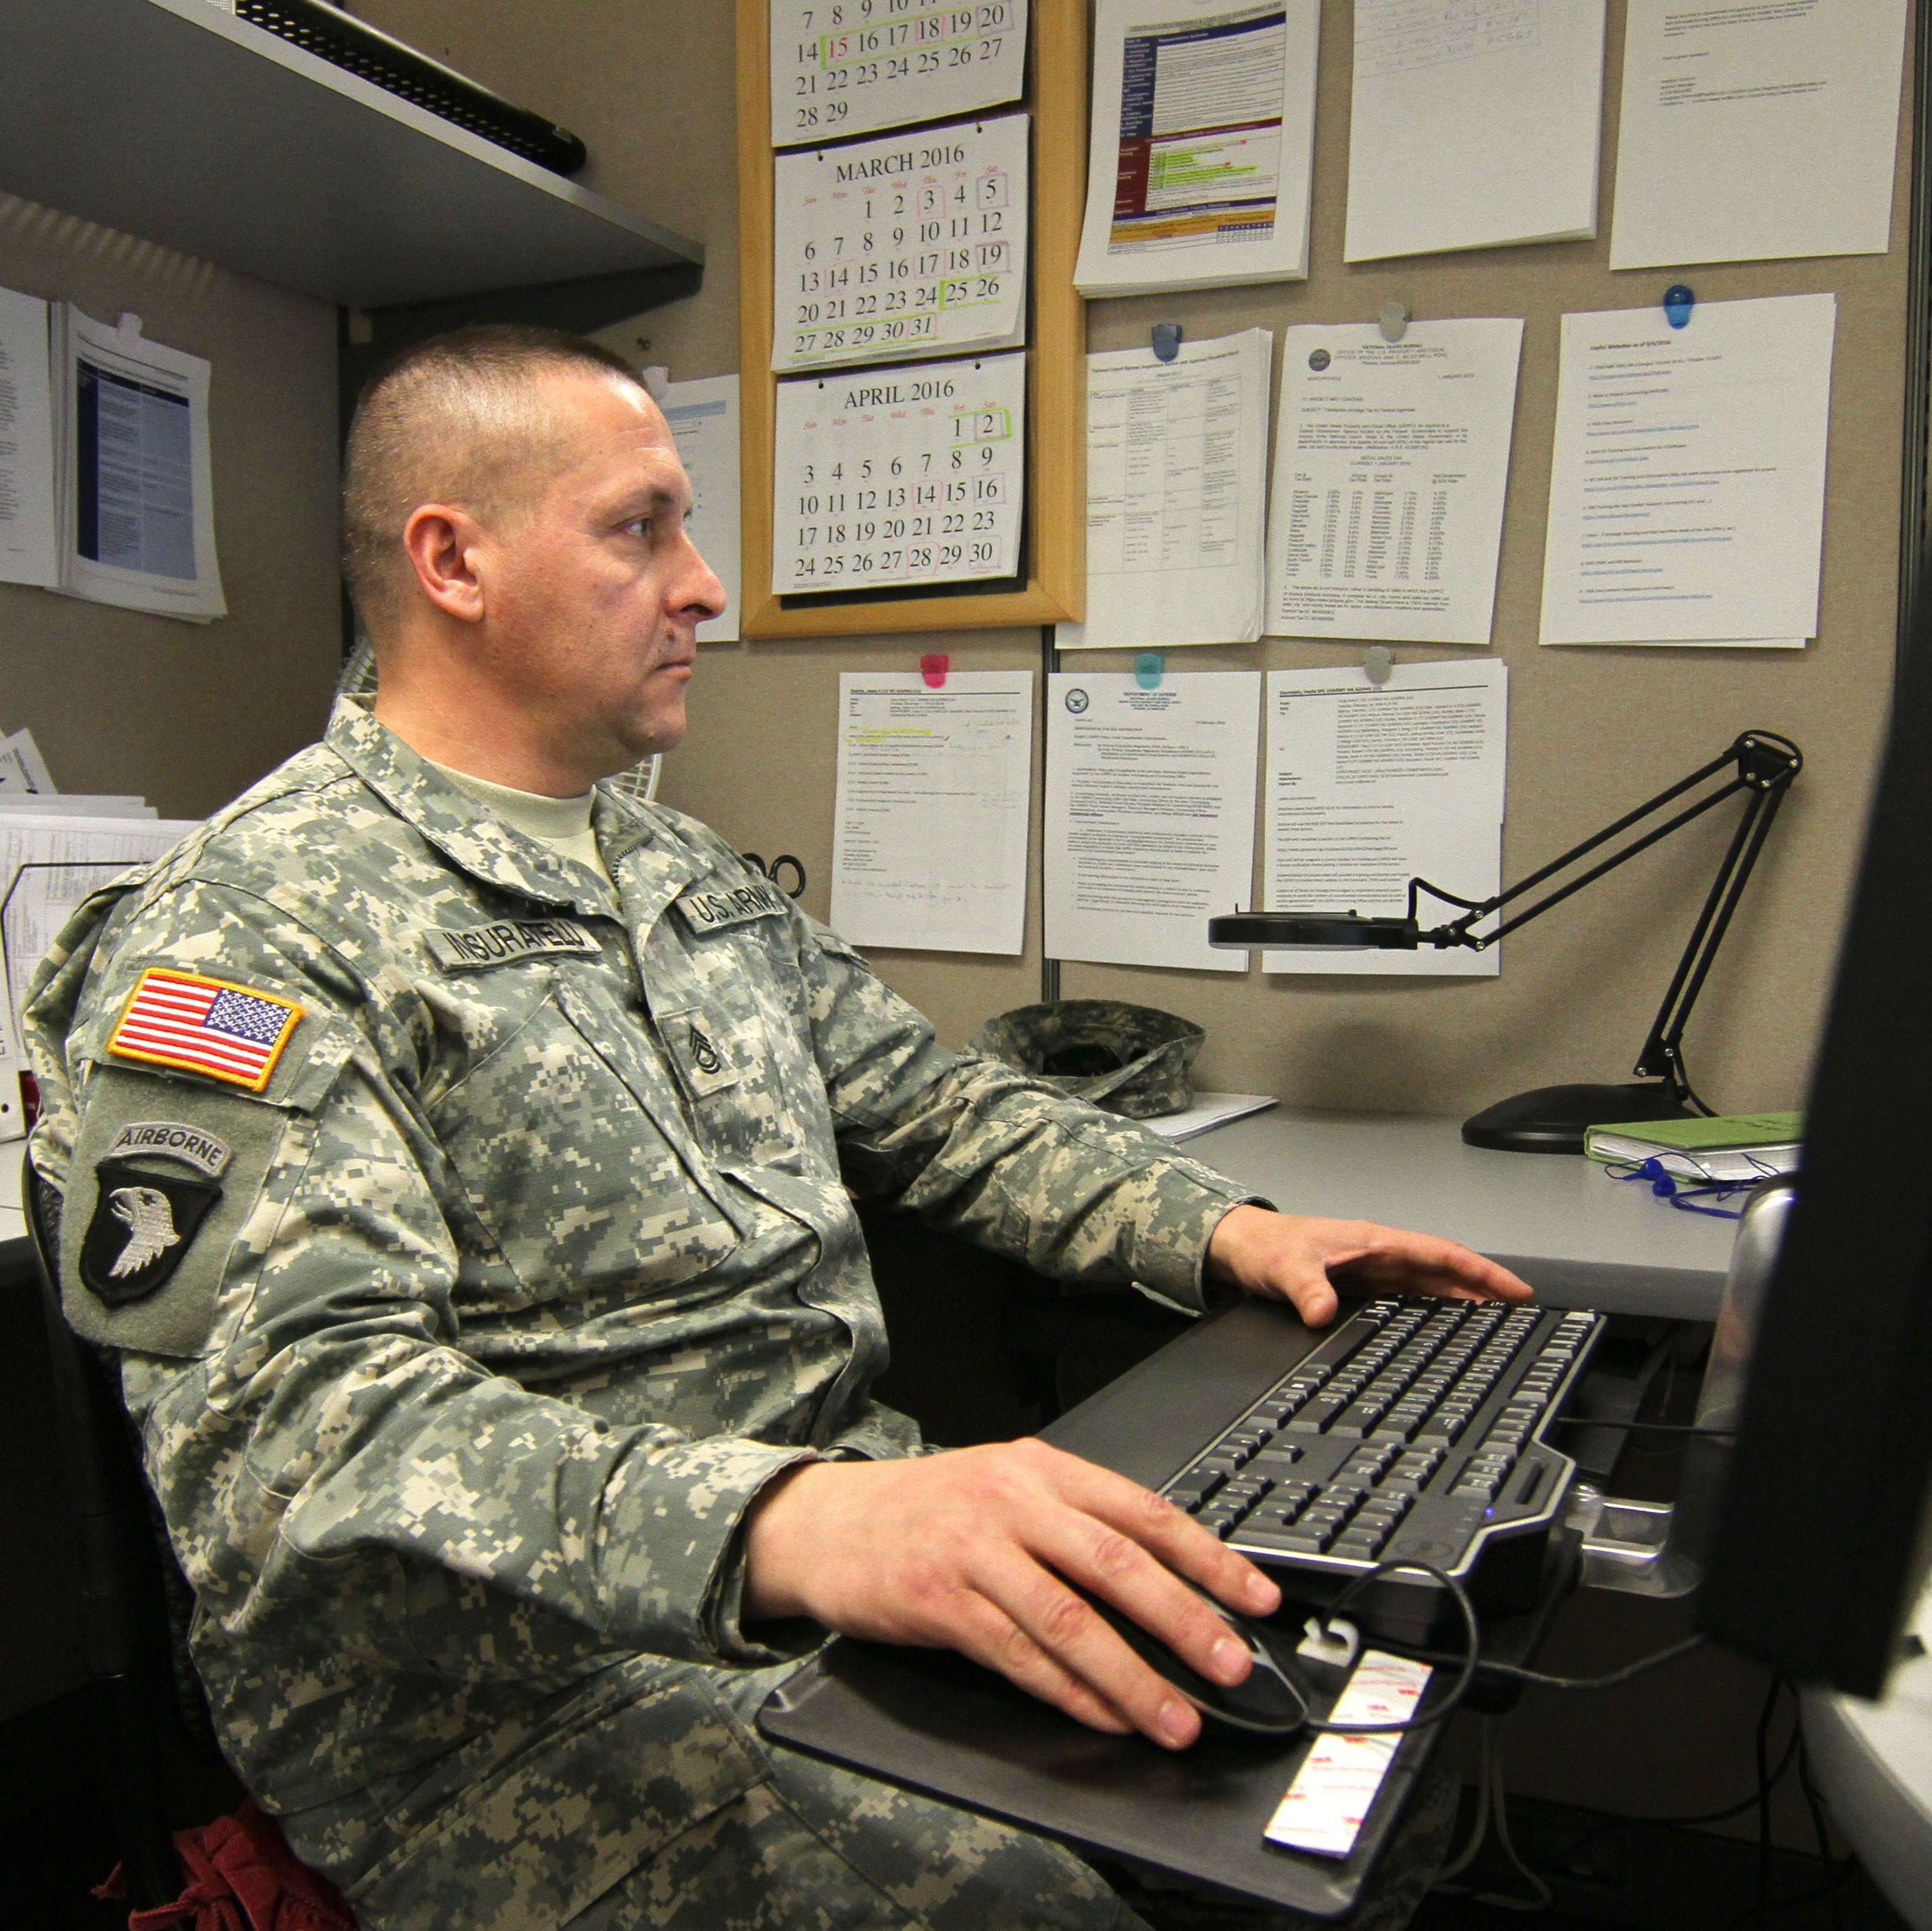 A USPFO Employee sits at a computer doing work